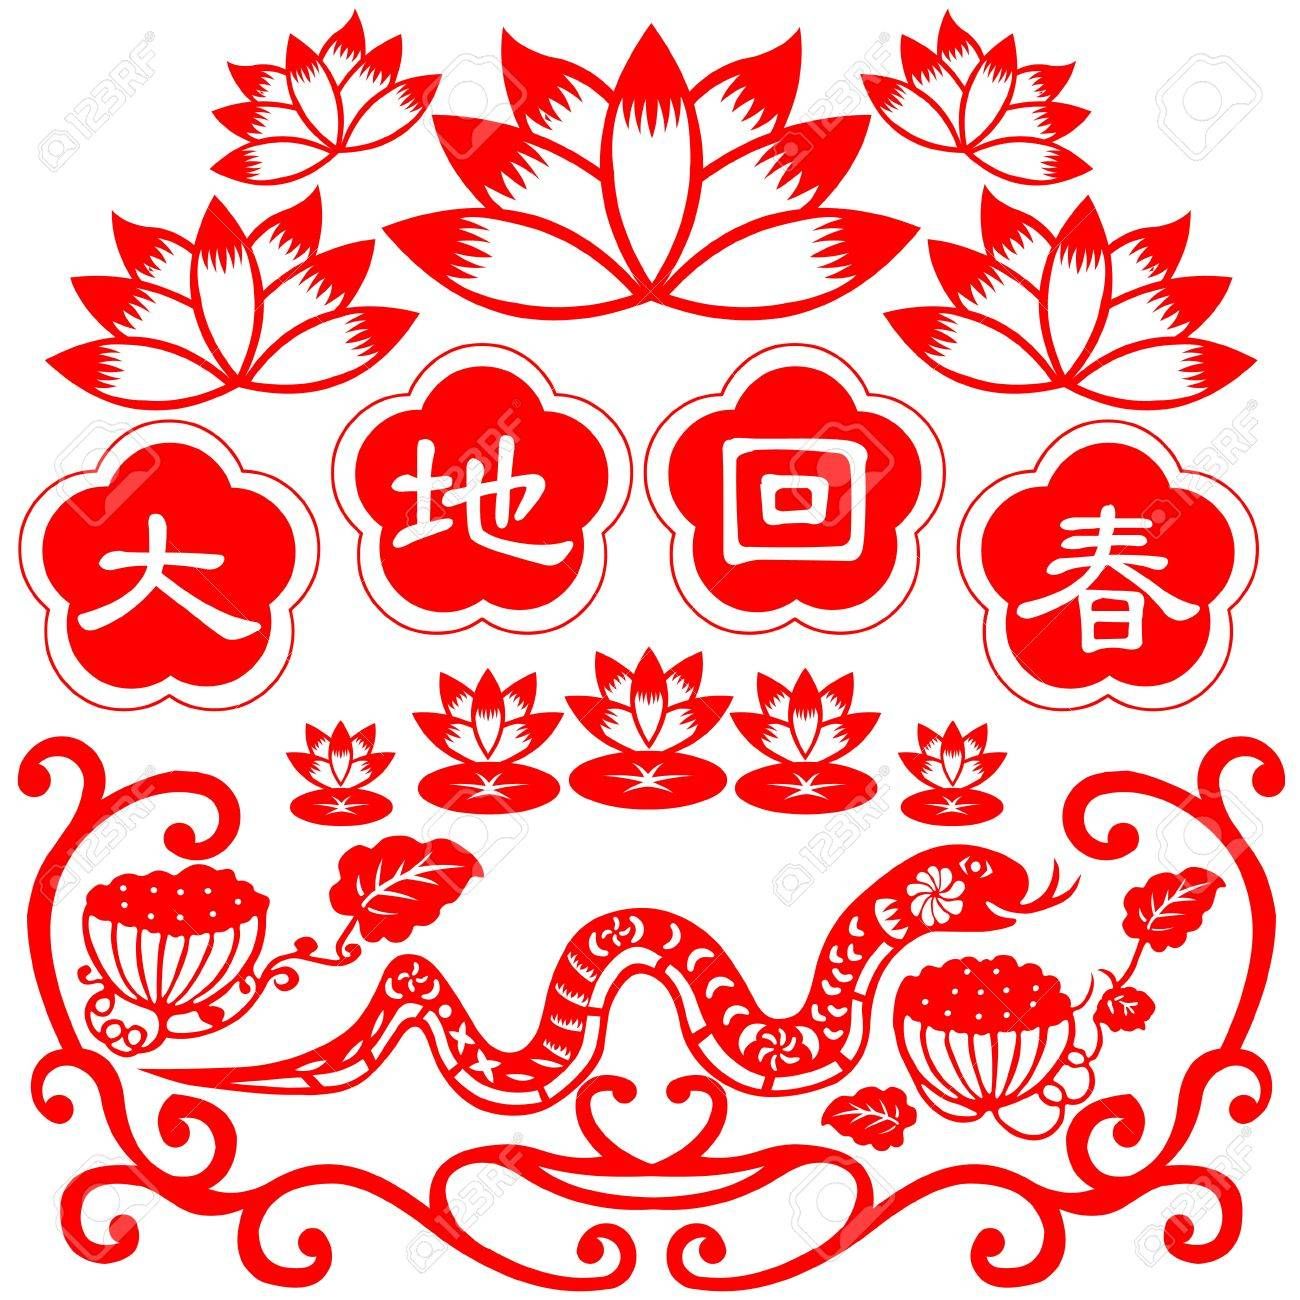 Chinese New Year Snake Stock Vector - 16795436